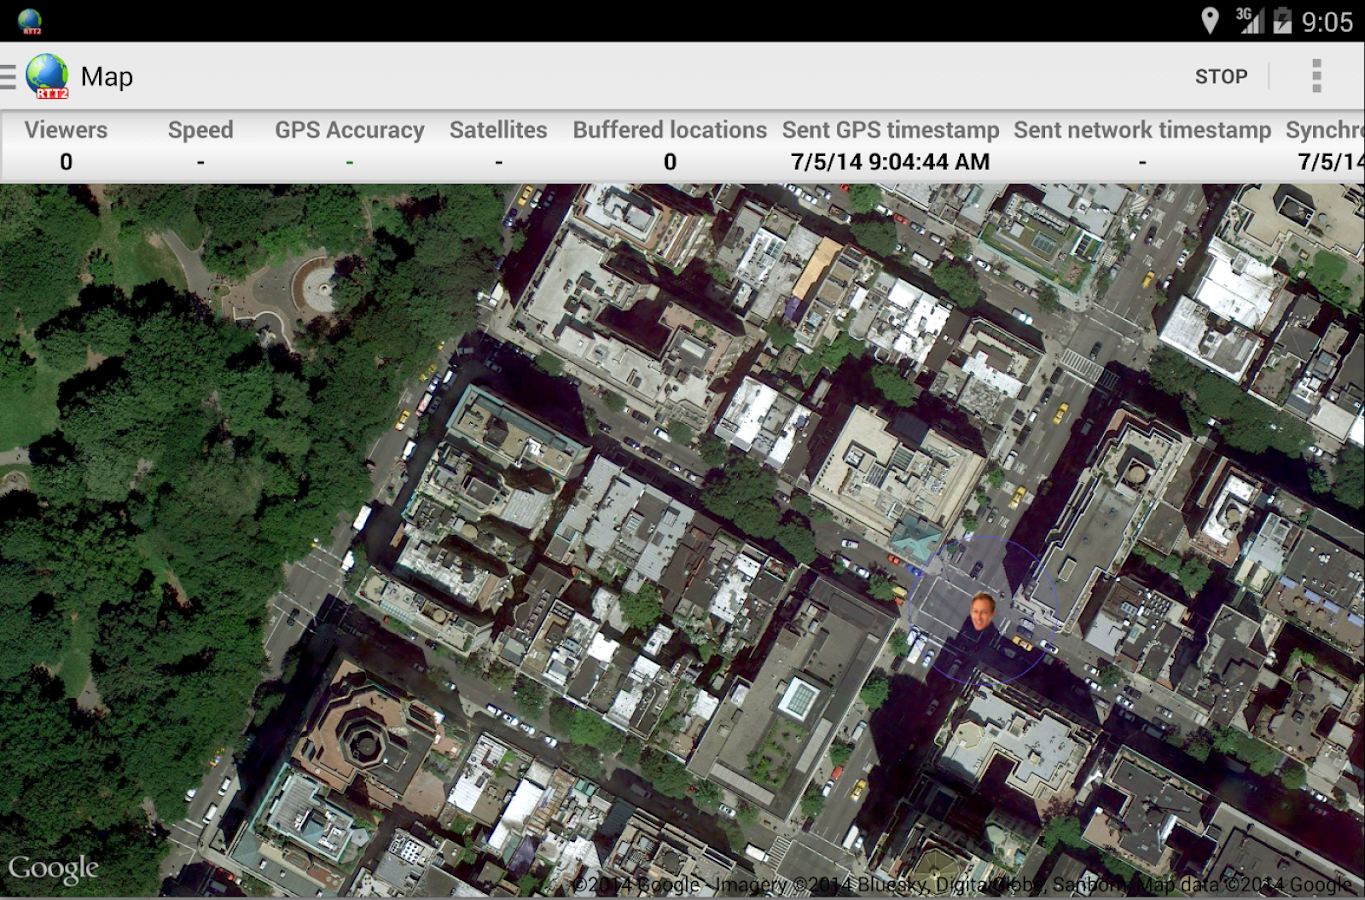 Real-Time GPS Tracker 2 - RTT2- screenshot